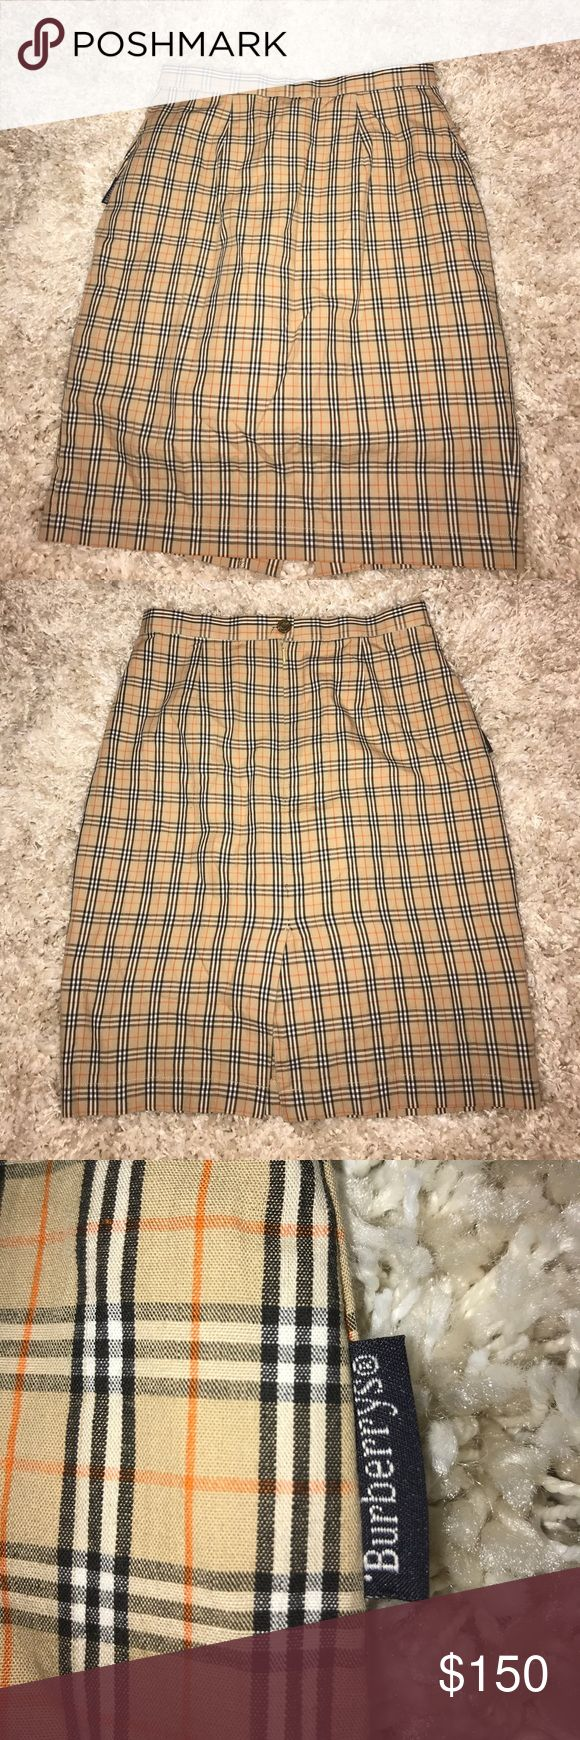 •Burberry's• Vintage Plaid Skirt Girls size 7/8. Has inner short. In perfect vintage condition. Burberry Bottoms Skirts